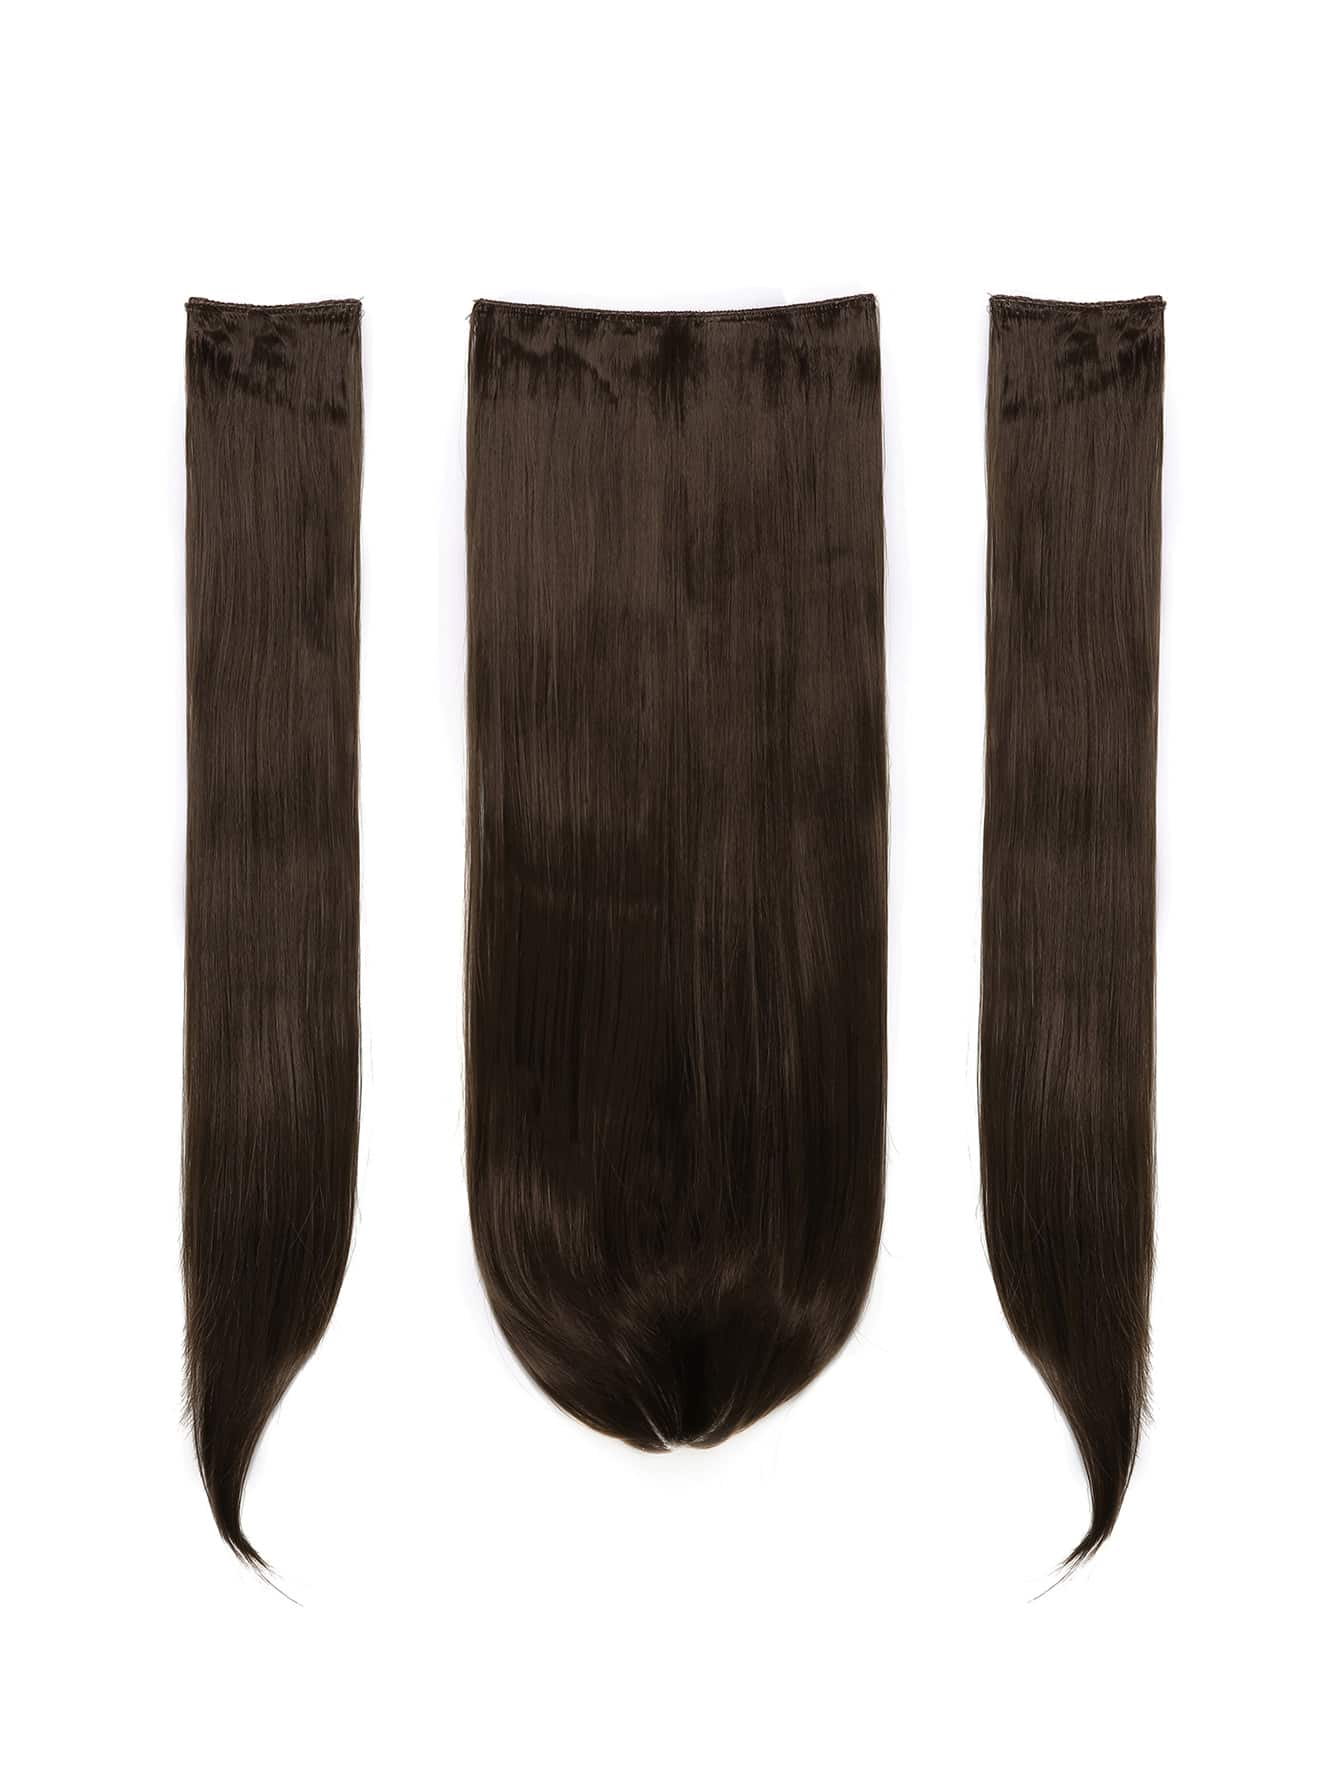 Choc Brown Clip In Straight Hair Extension 3pcs